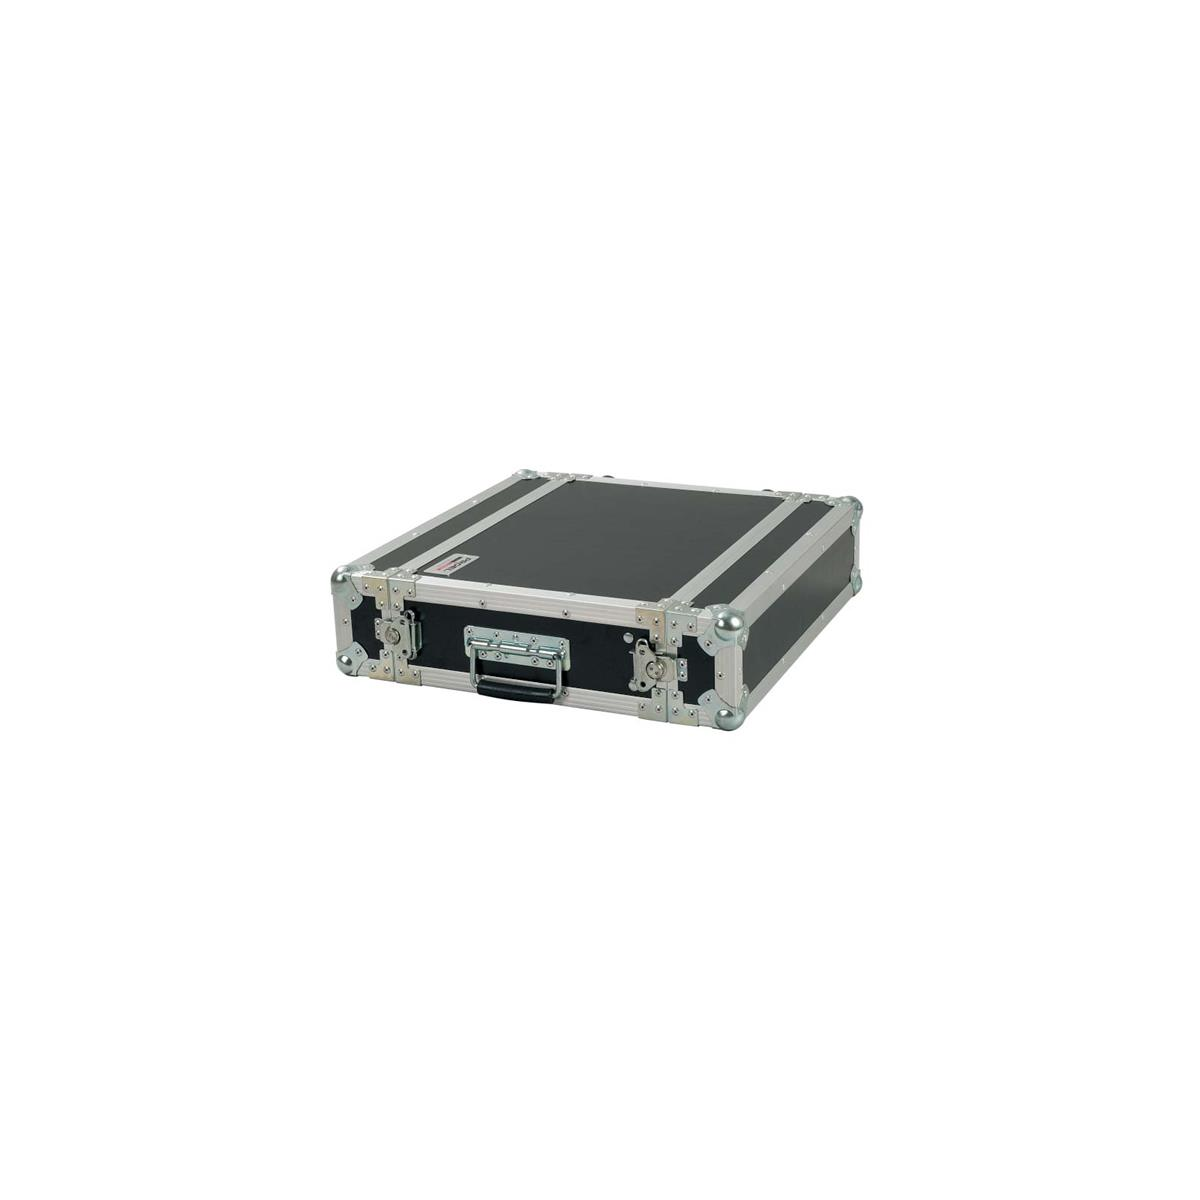 PROEL-CR102-BLKM-CASE-RACK-2-UNITA-39-sku-2101